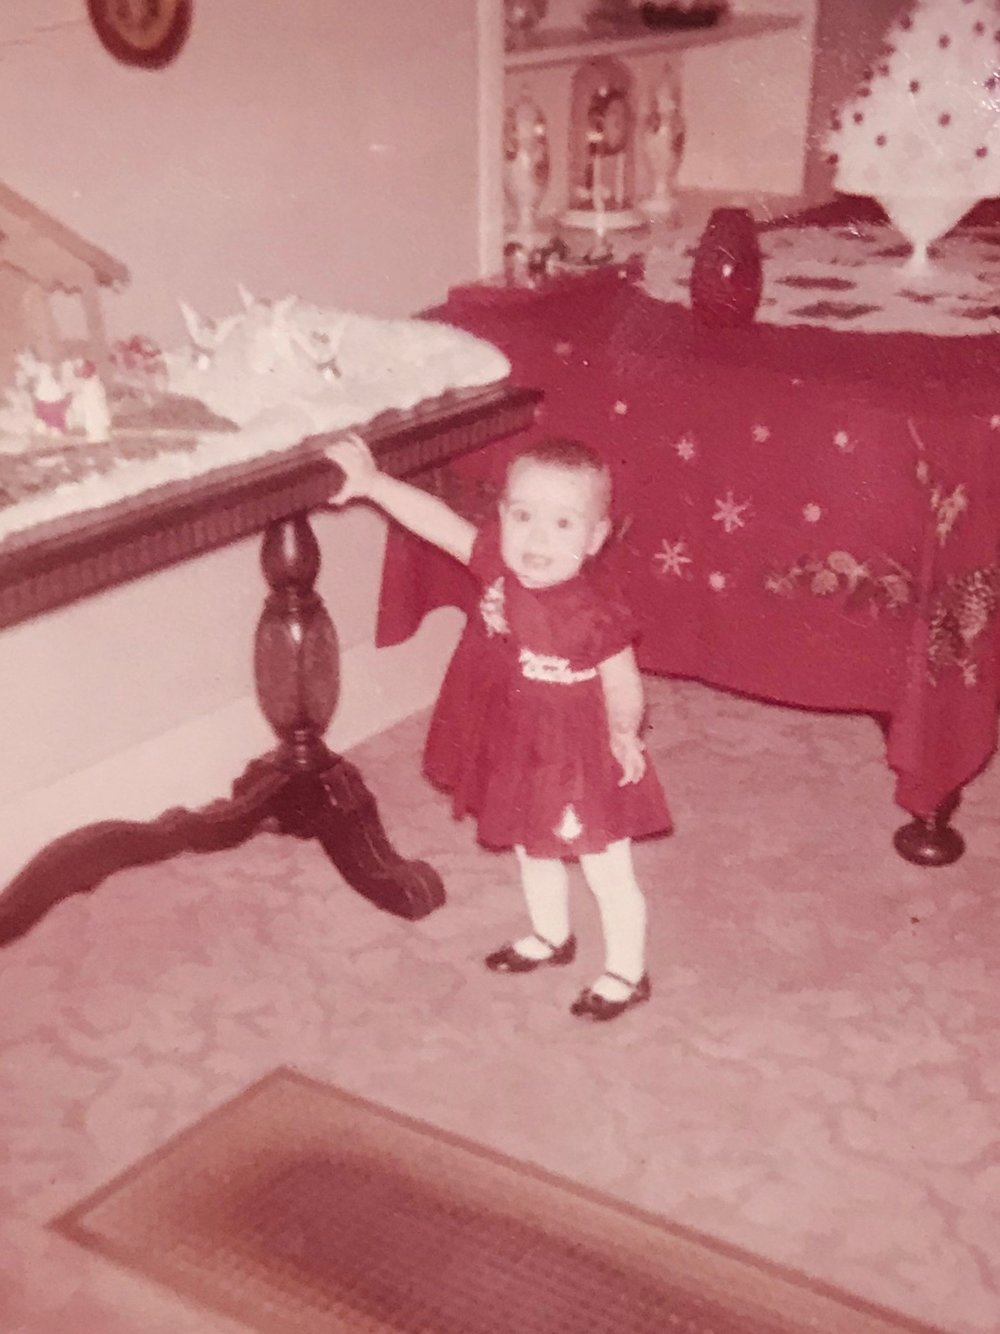 Just knee high to a June bug, I was my own mini-me.